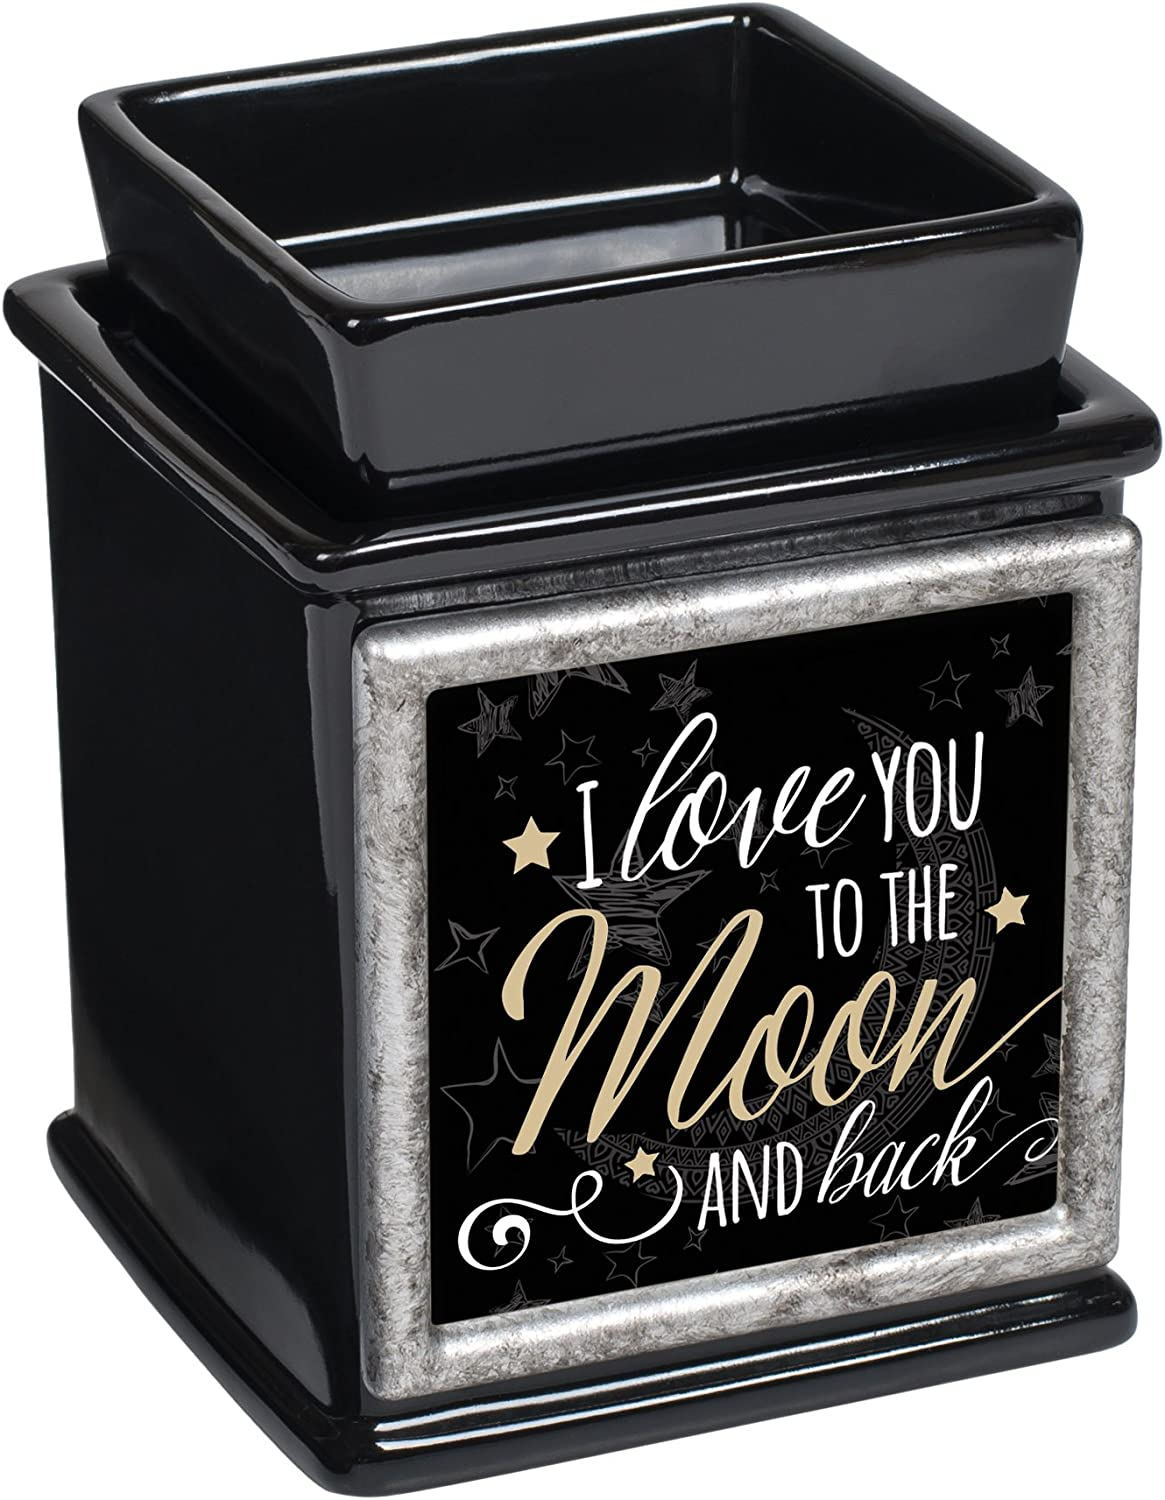 Elanze Designs Love You to The Moon Ceramic Glossy Black Interchangeable Photo Frame Candle Wax Oil Warmer